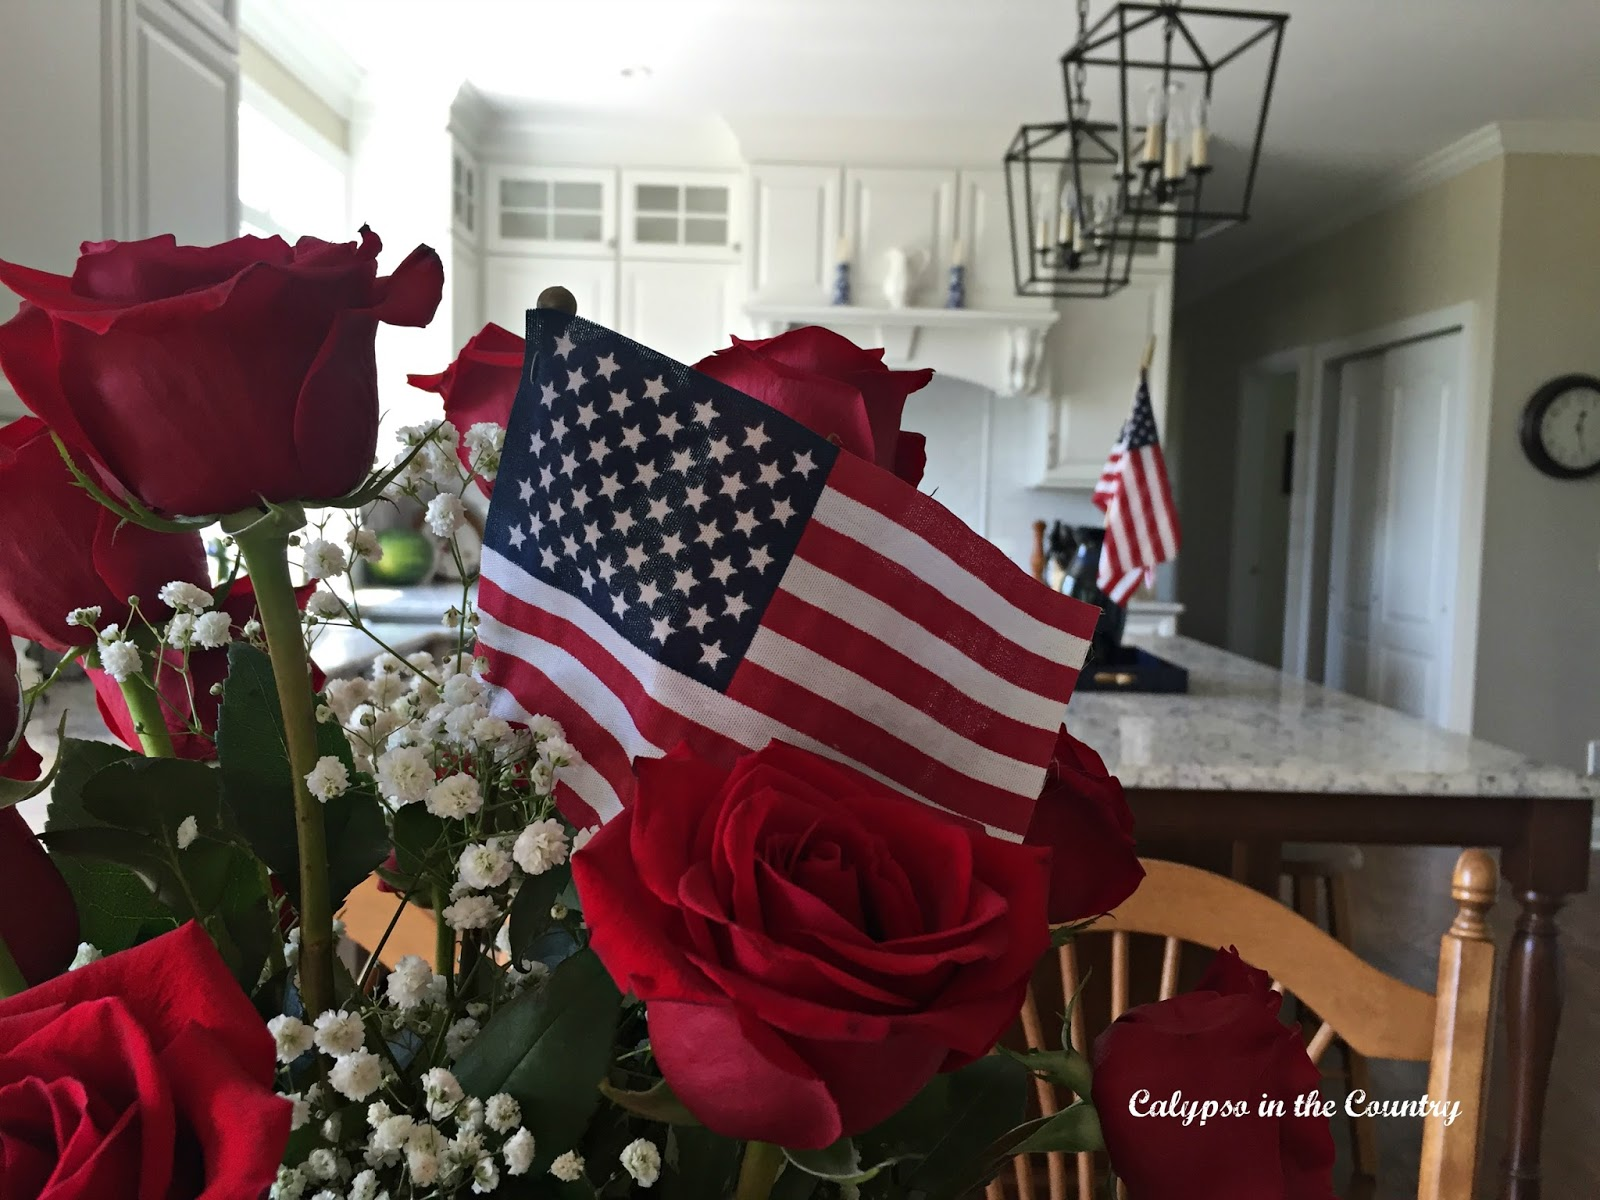 Decorating the Kitchen for the 4th of July